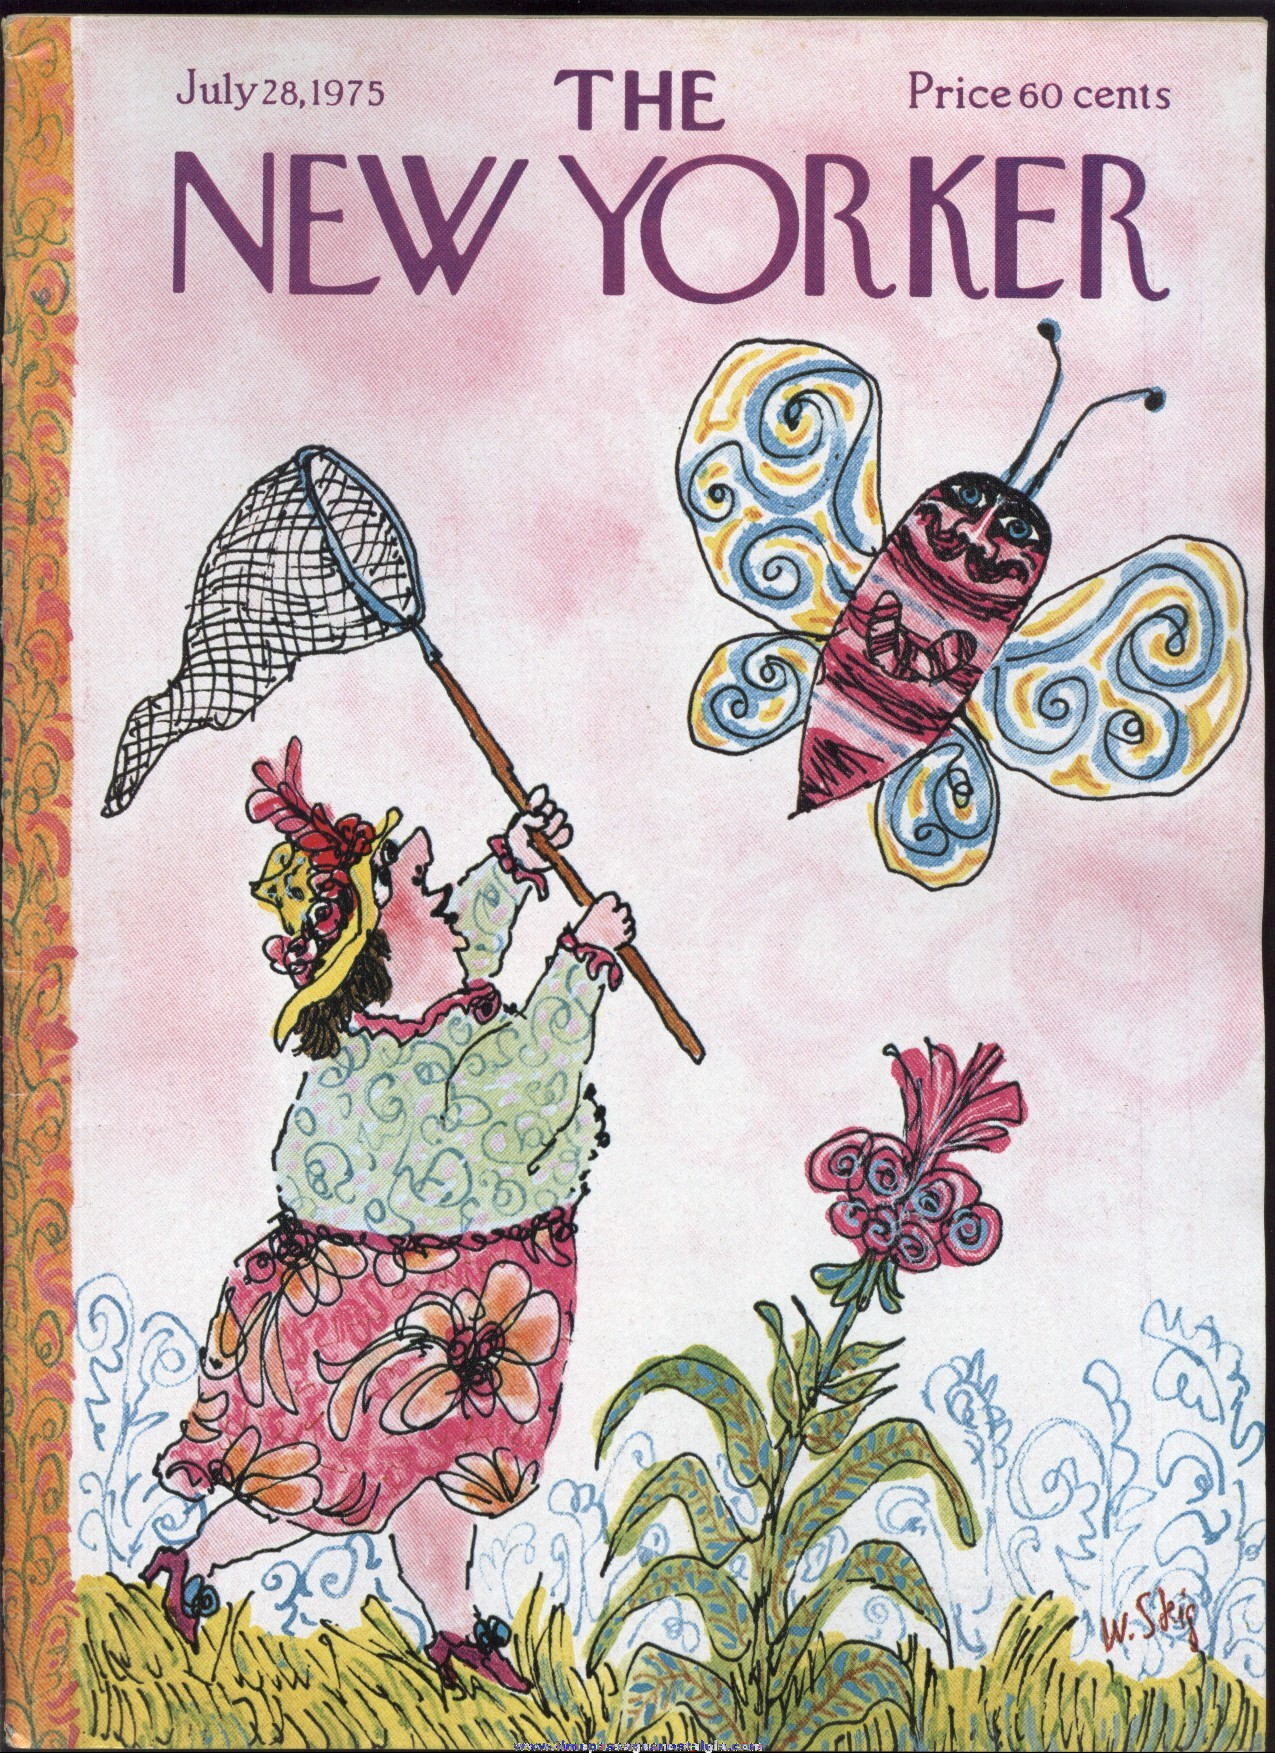 New Yorker Magazine - July 28, 1975 - Cover by William Steig